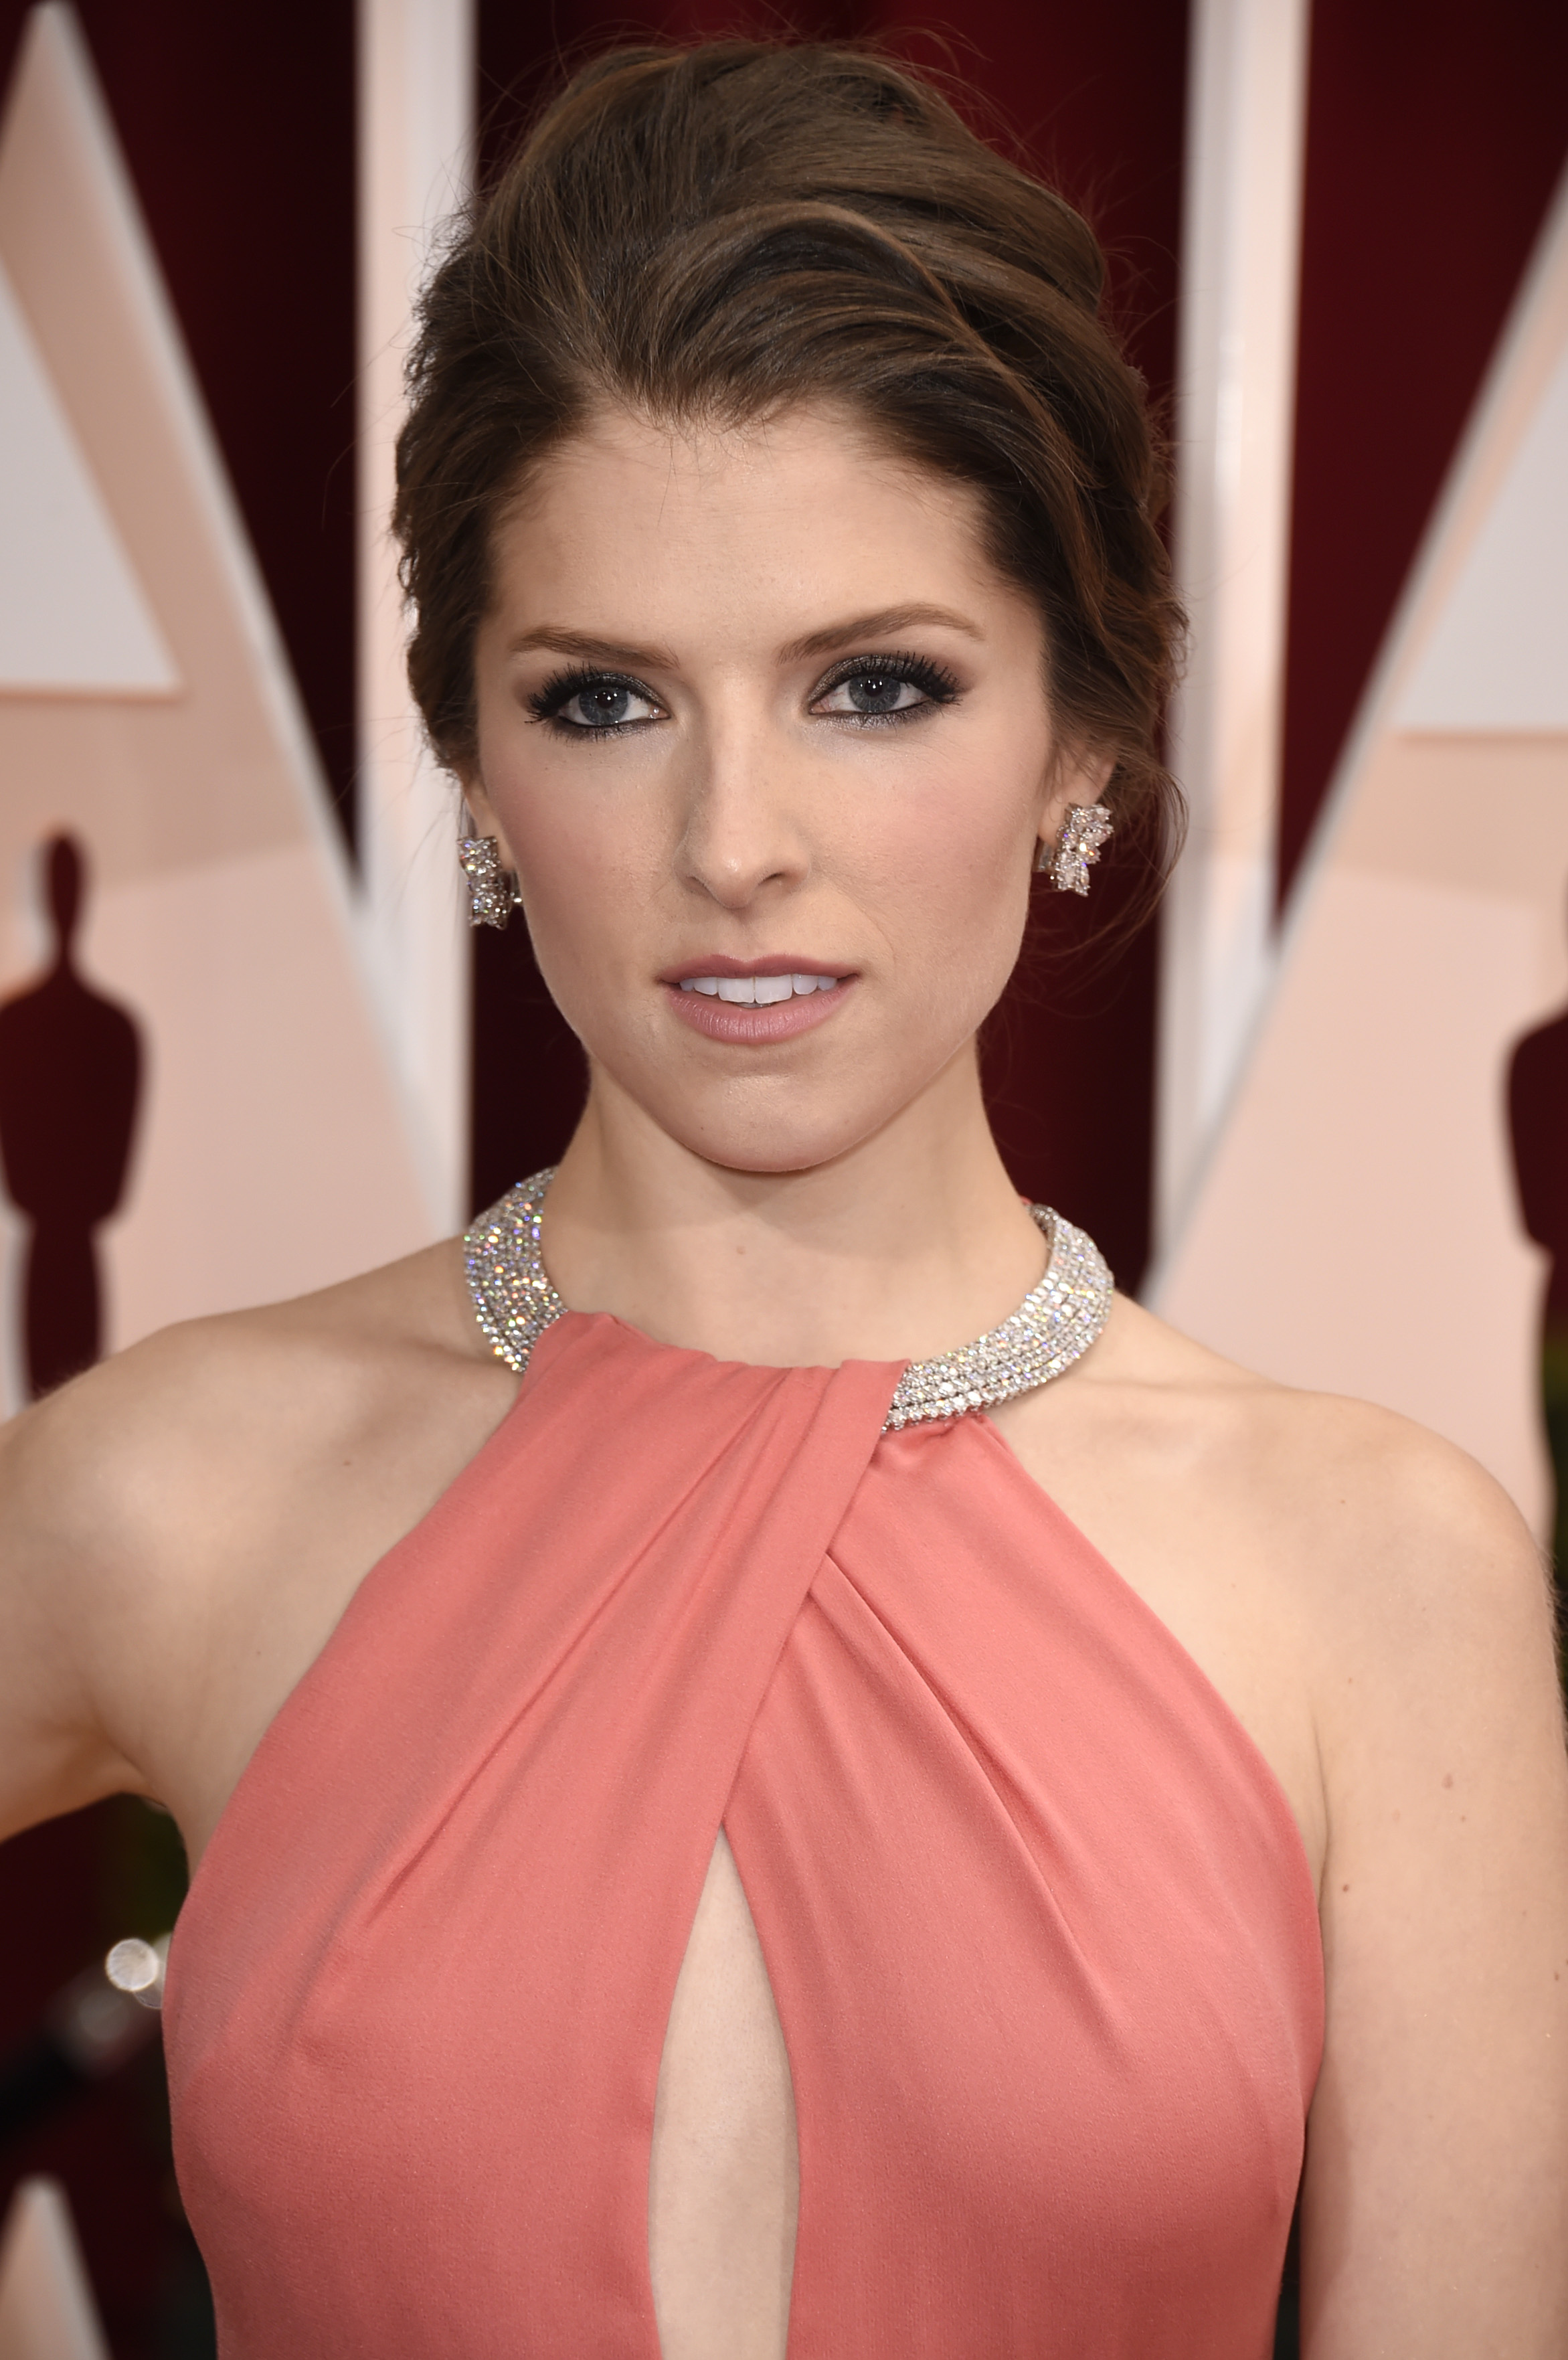 Anna kendrick cleavage inquiry answer